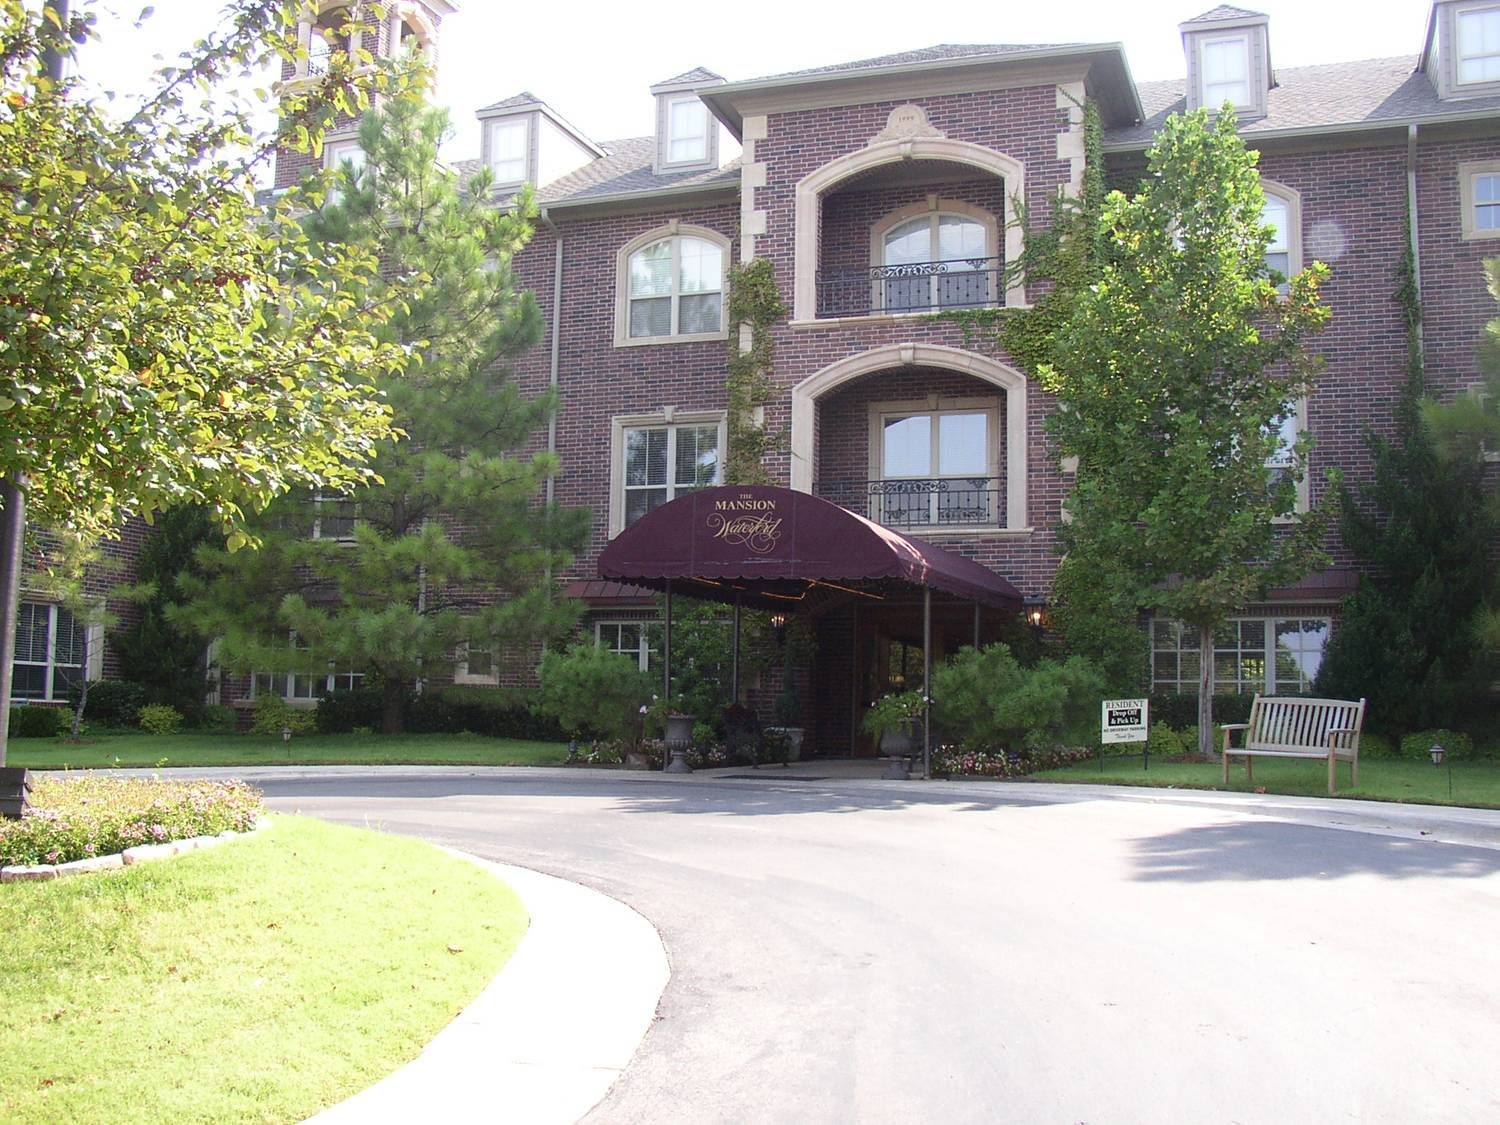 Photo 1 of The Mansion at Waterford